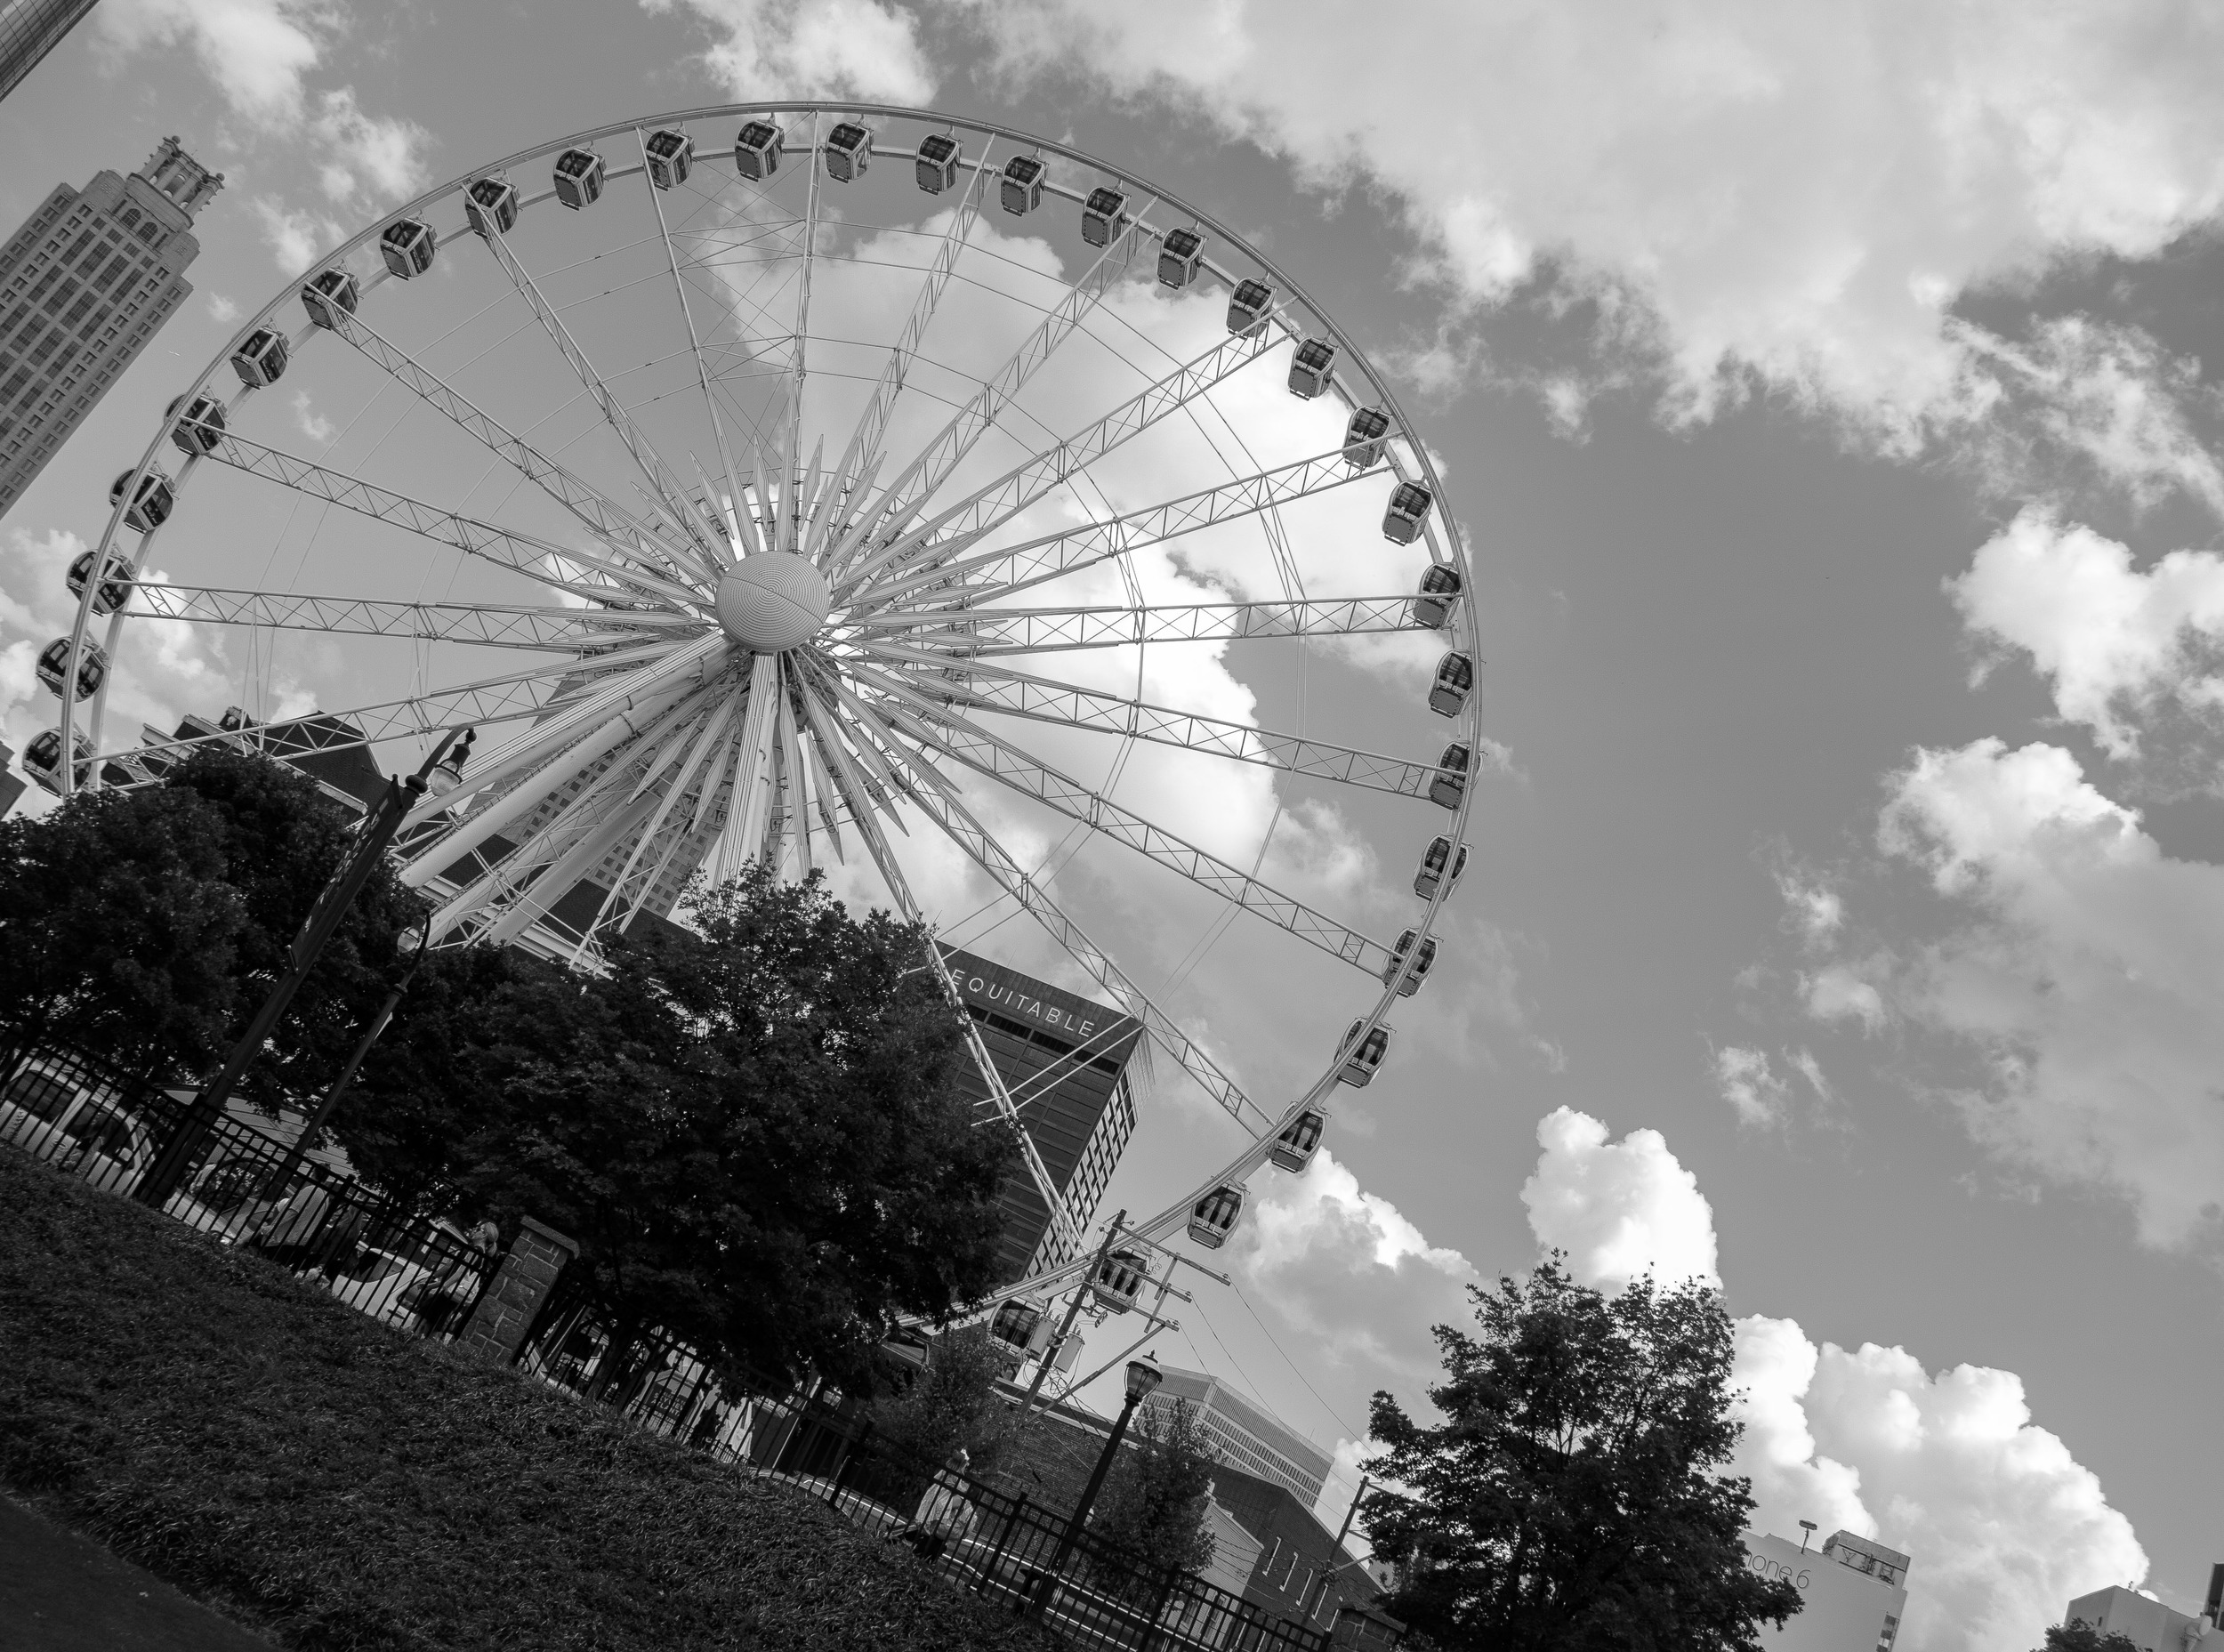 The Ferris wheel here is the Skyview Atlanta. This is by Centennial Olympic Park in Atlanta, GA